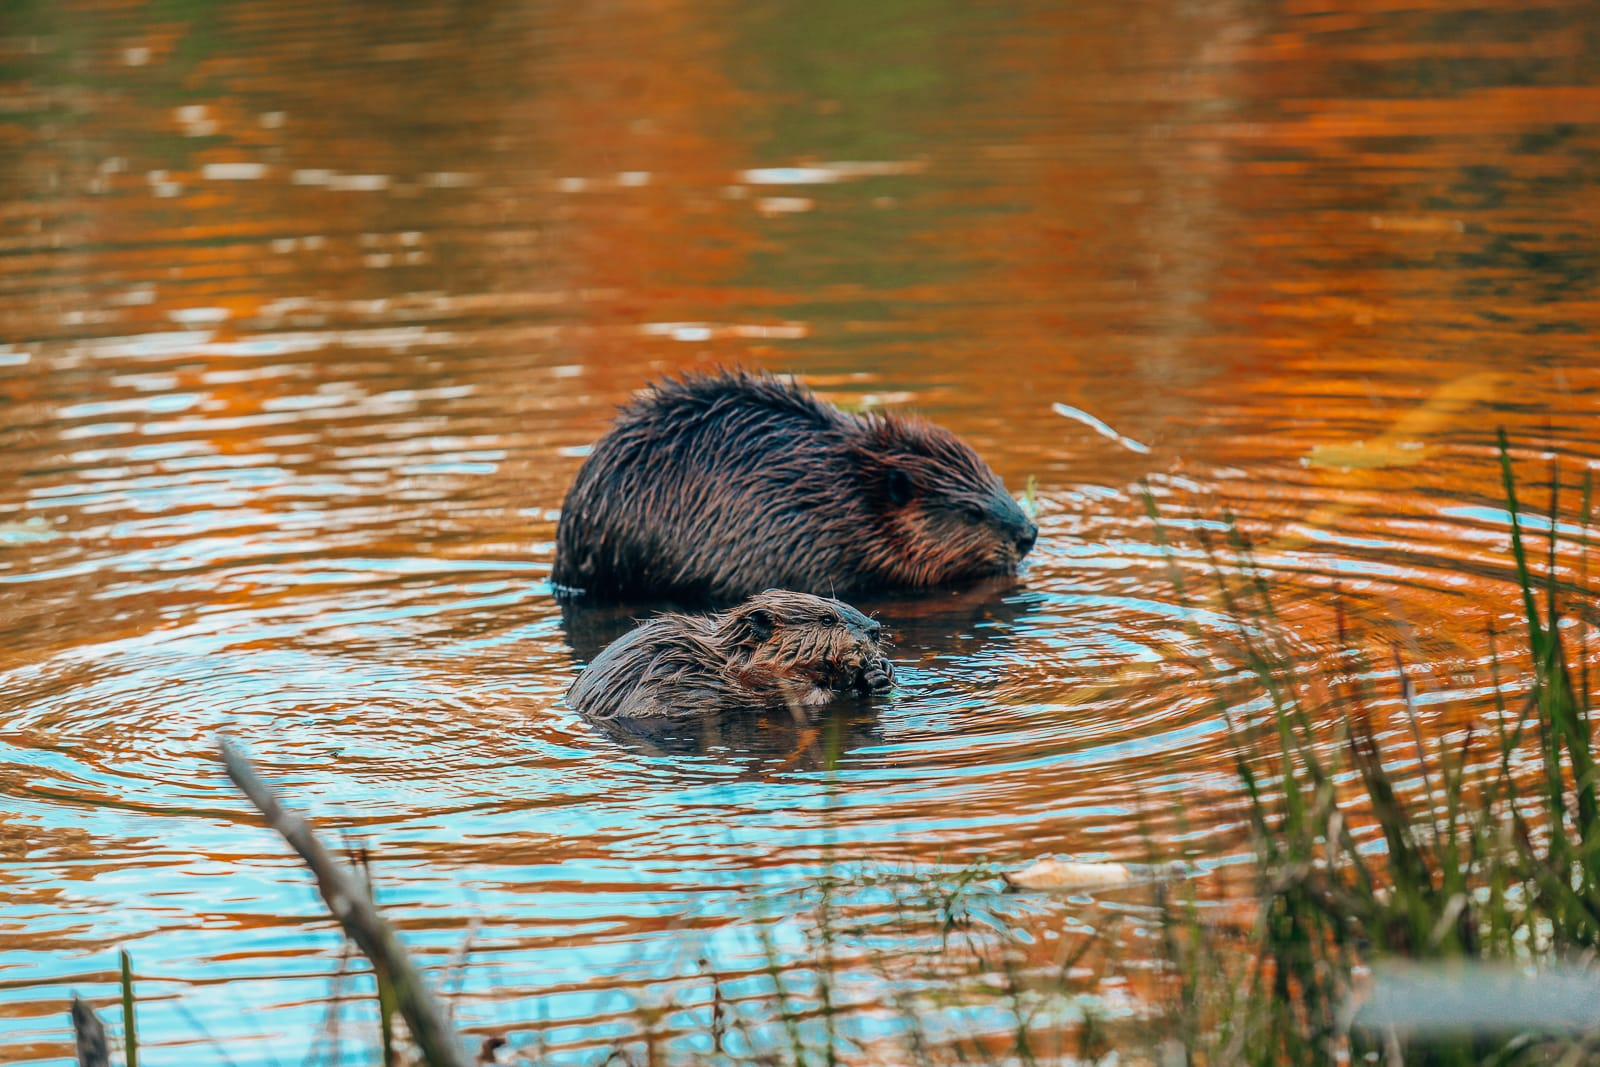 Getting Lost In Nature (And With Beavers) In Quebec, Canada